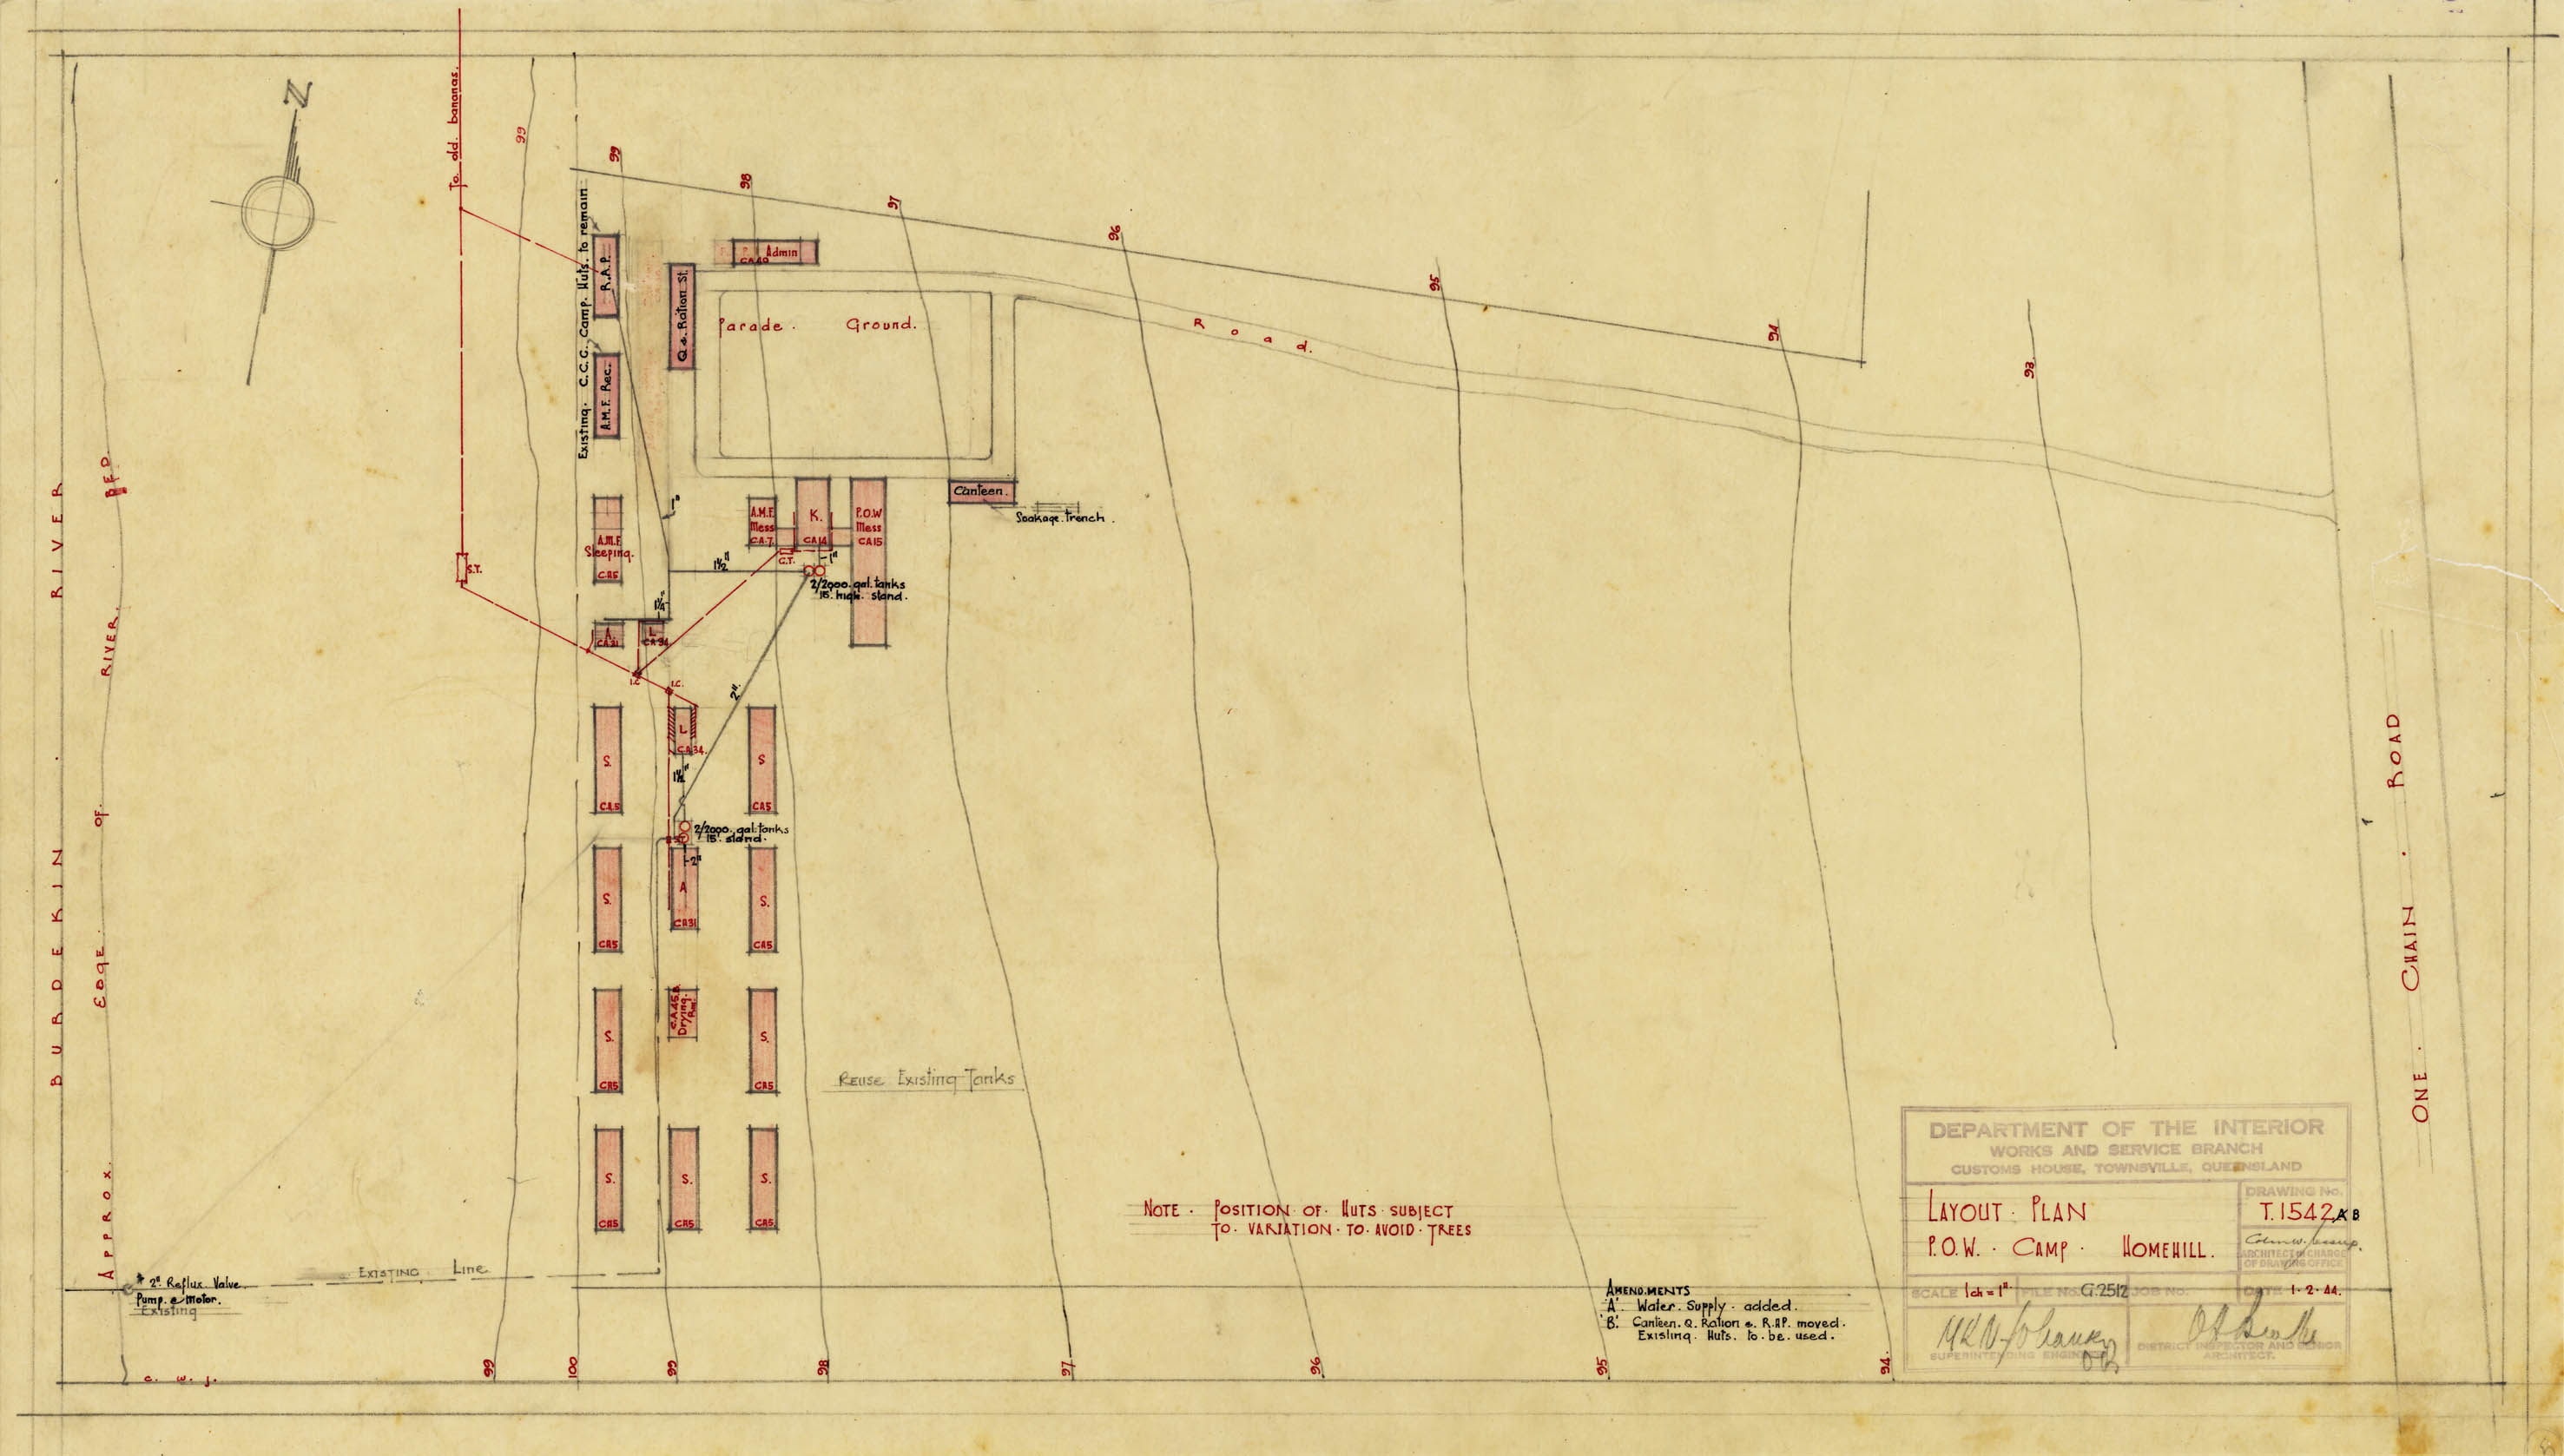 1944.camp layout